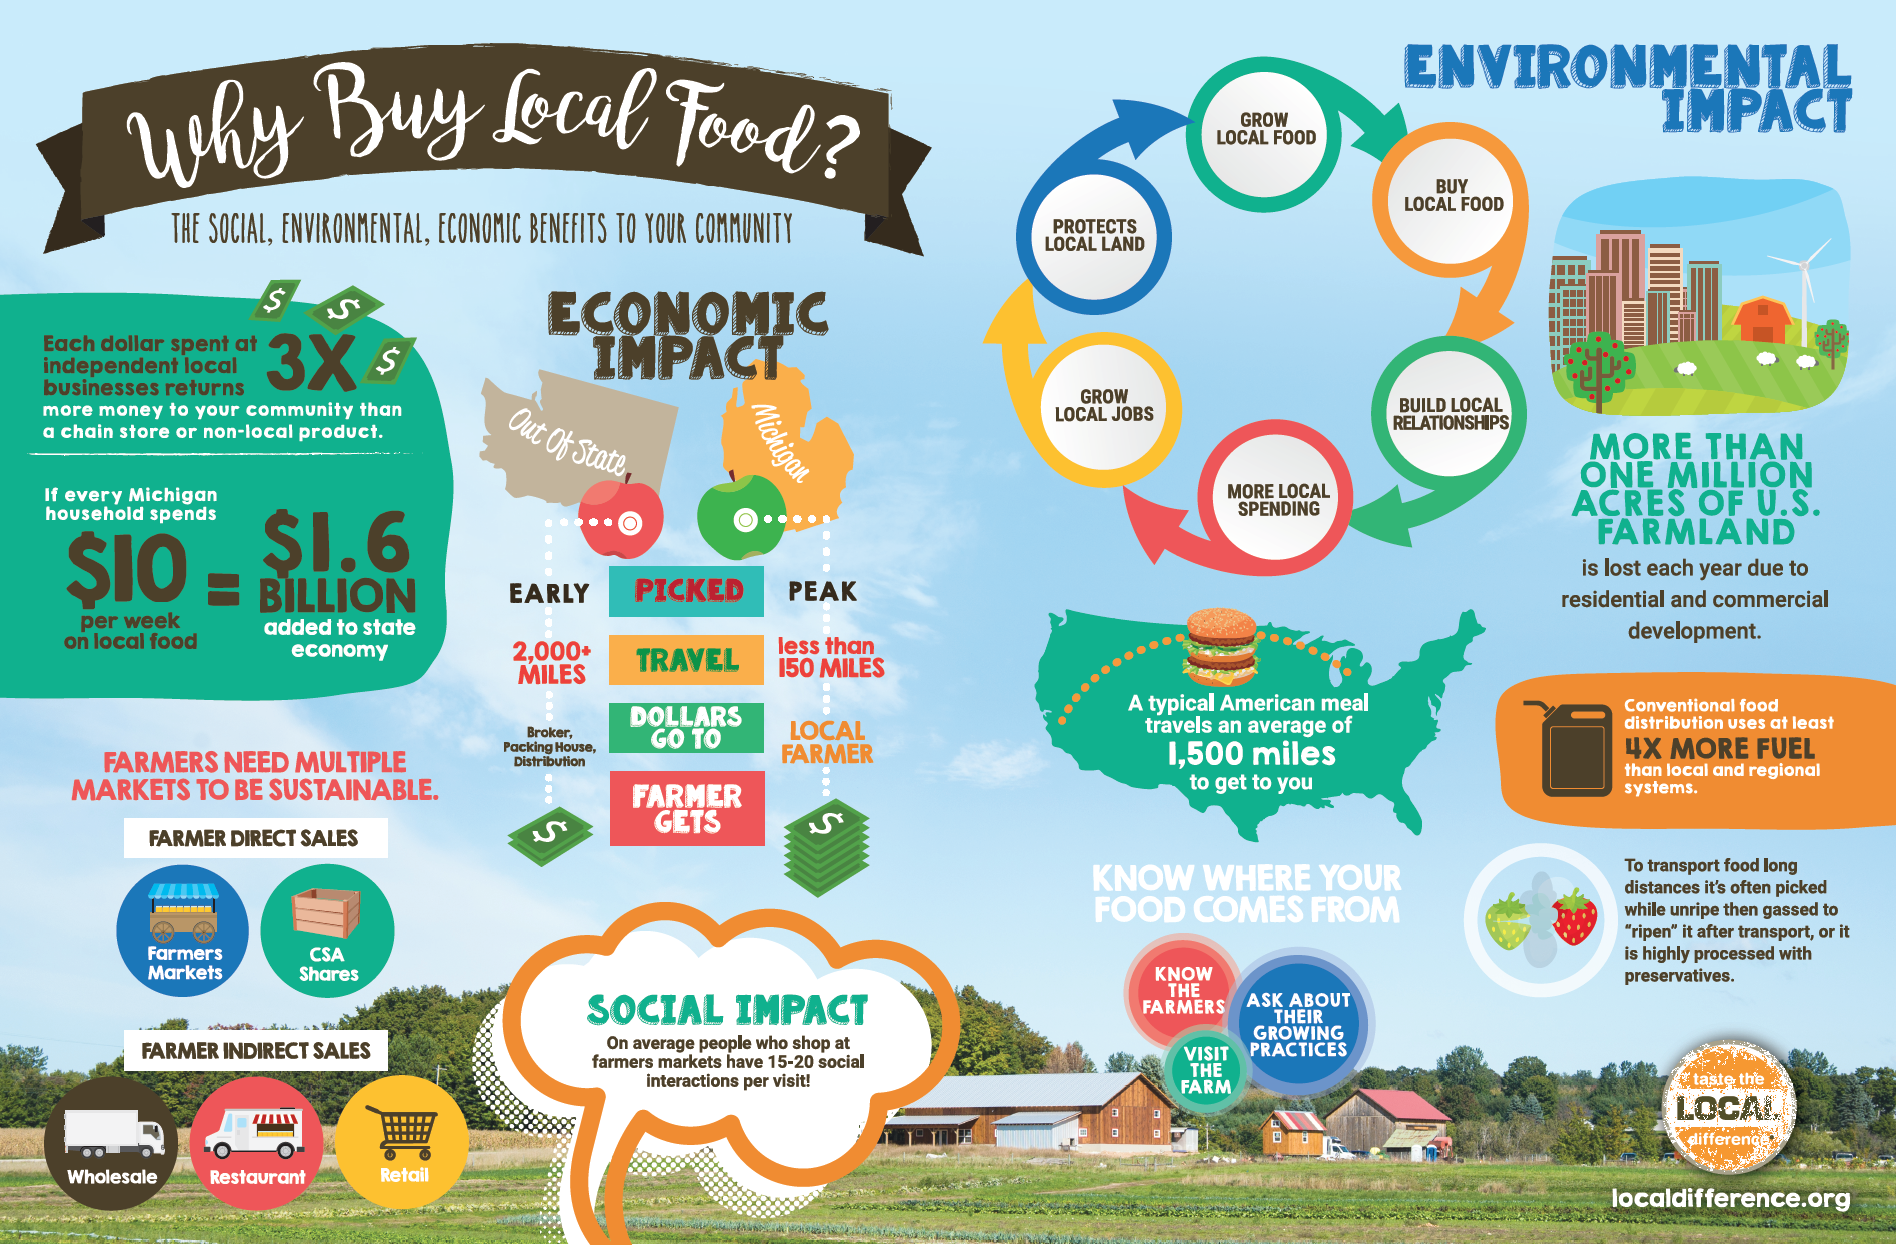 Guide from localdifference.org. Visit their website to learn more about local food!